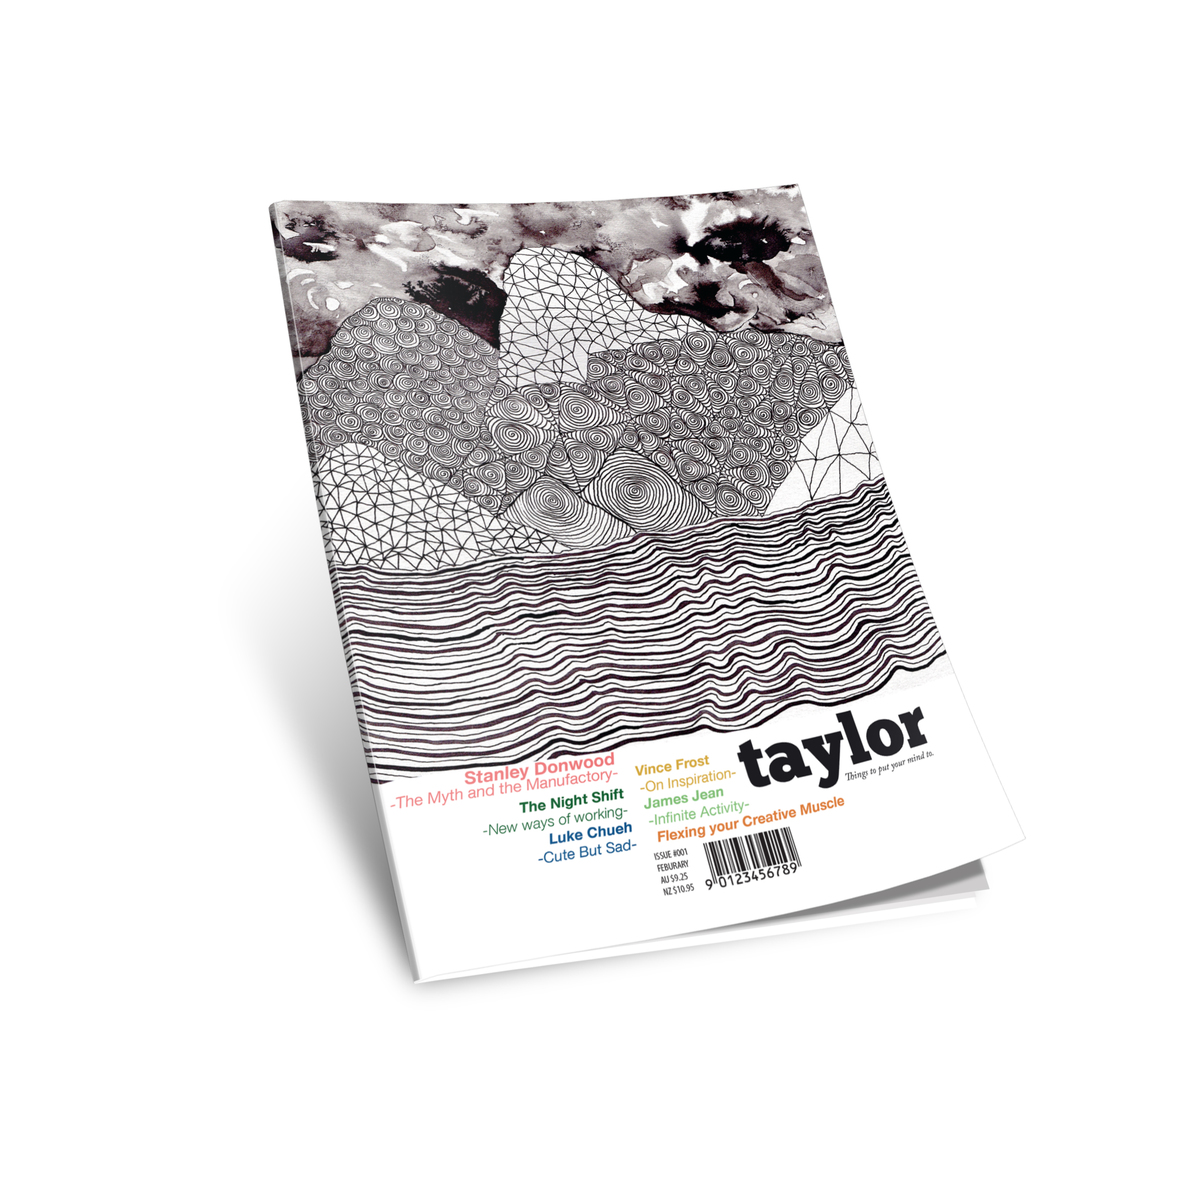 Taylor Magazine Cover mockup - Hannah Carrick Portfolio - The Loop